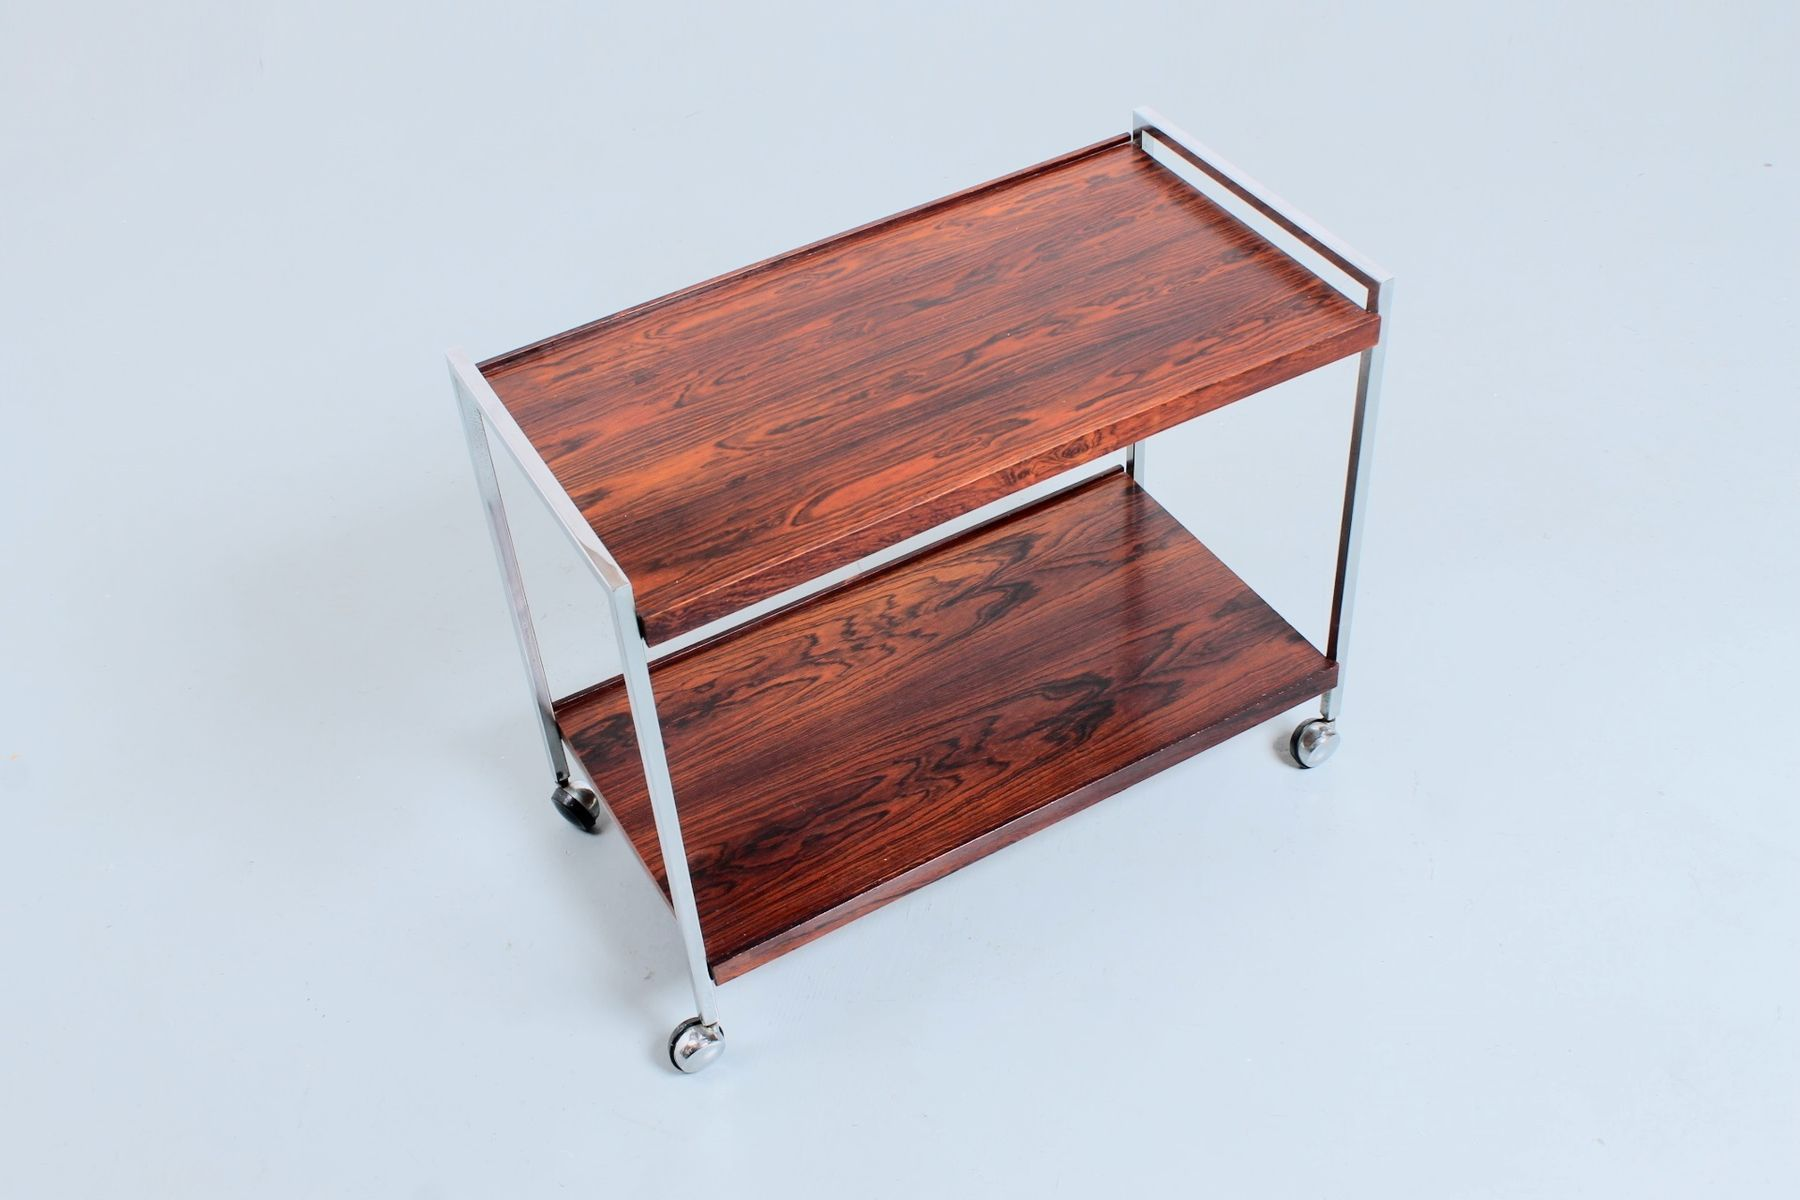 Rosewood chrome serving trolley cart from stiemsma 1970s for rosewood chrome serving trolley cart from stiemsma 1970s geotapseo Choice Image